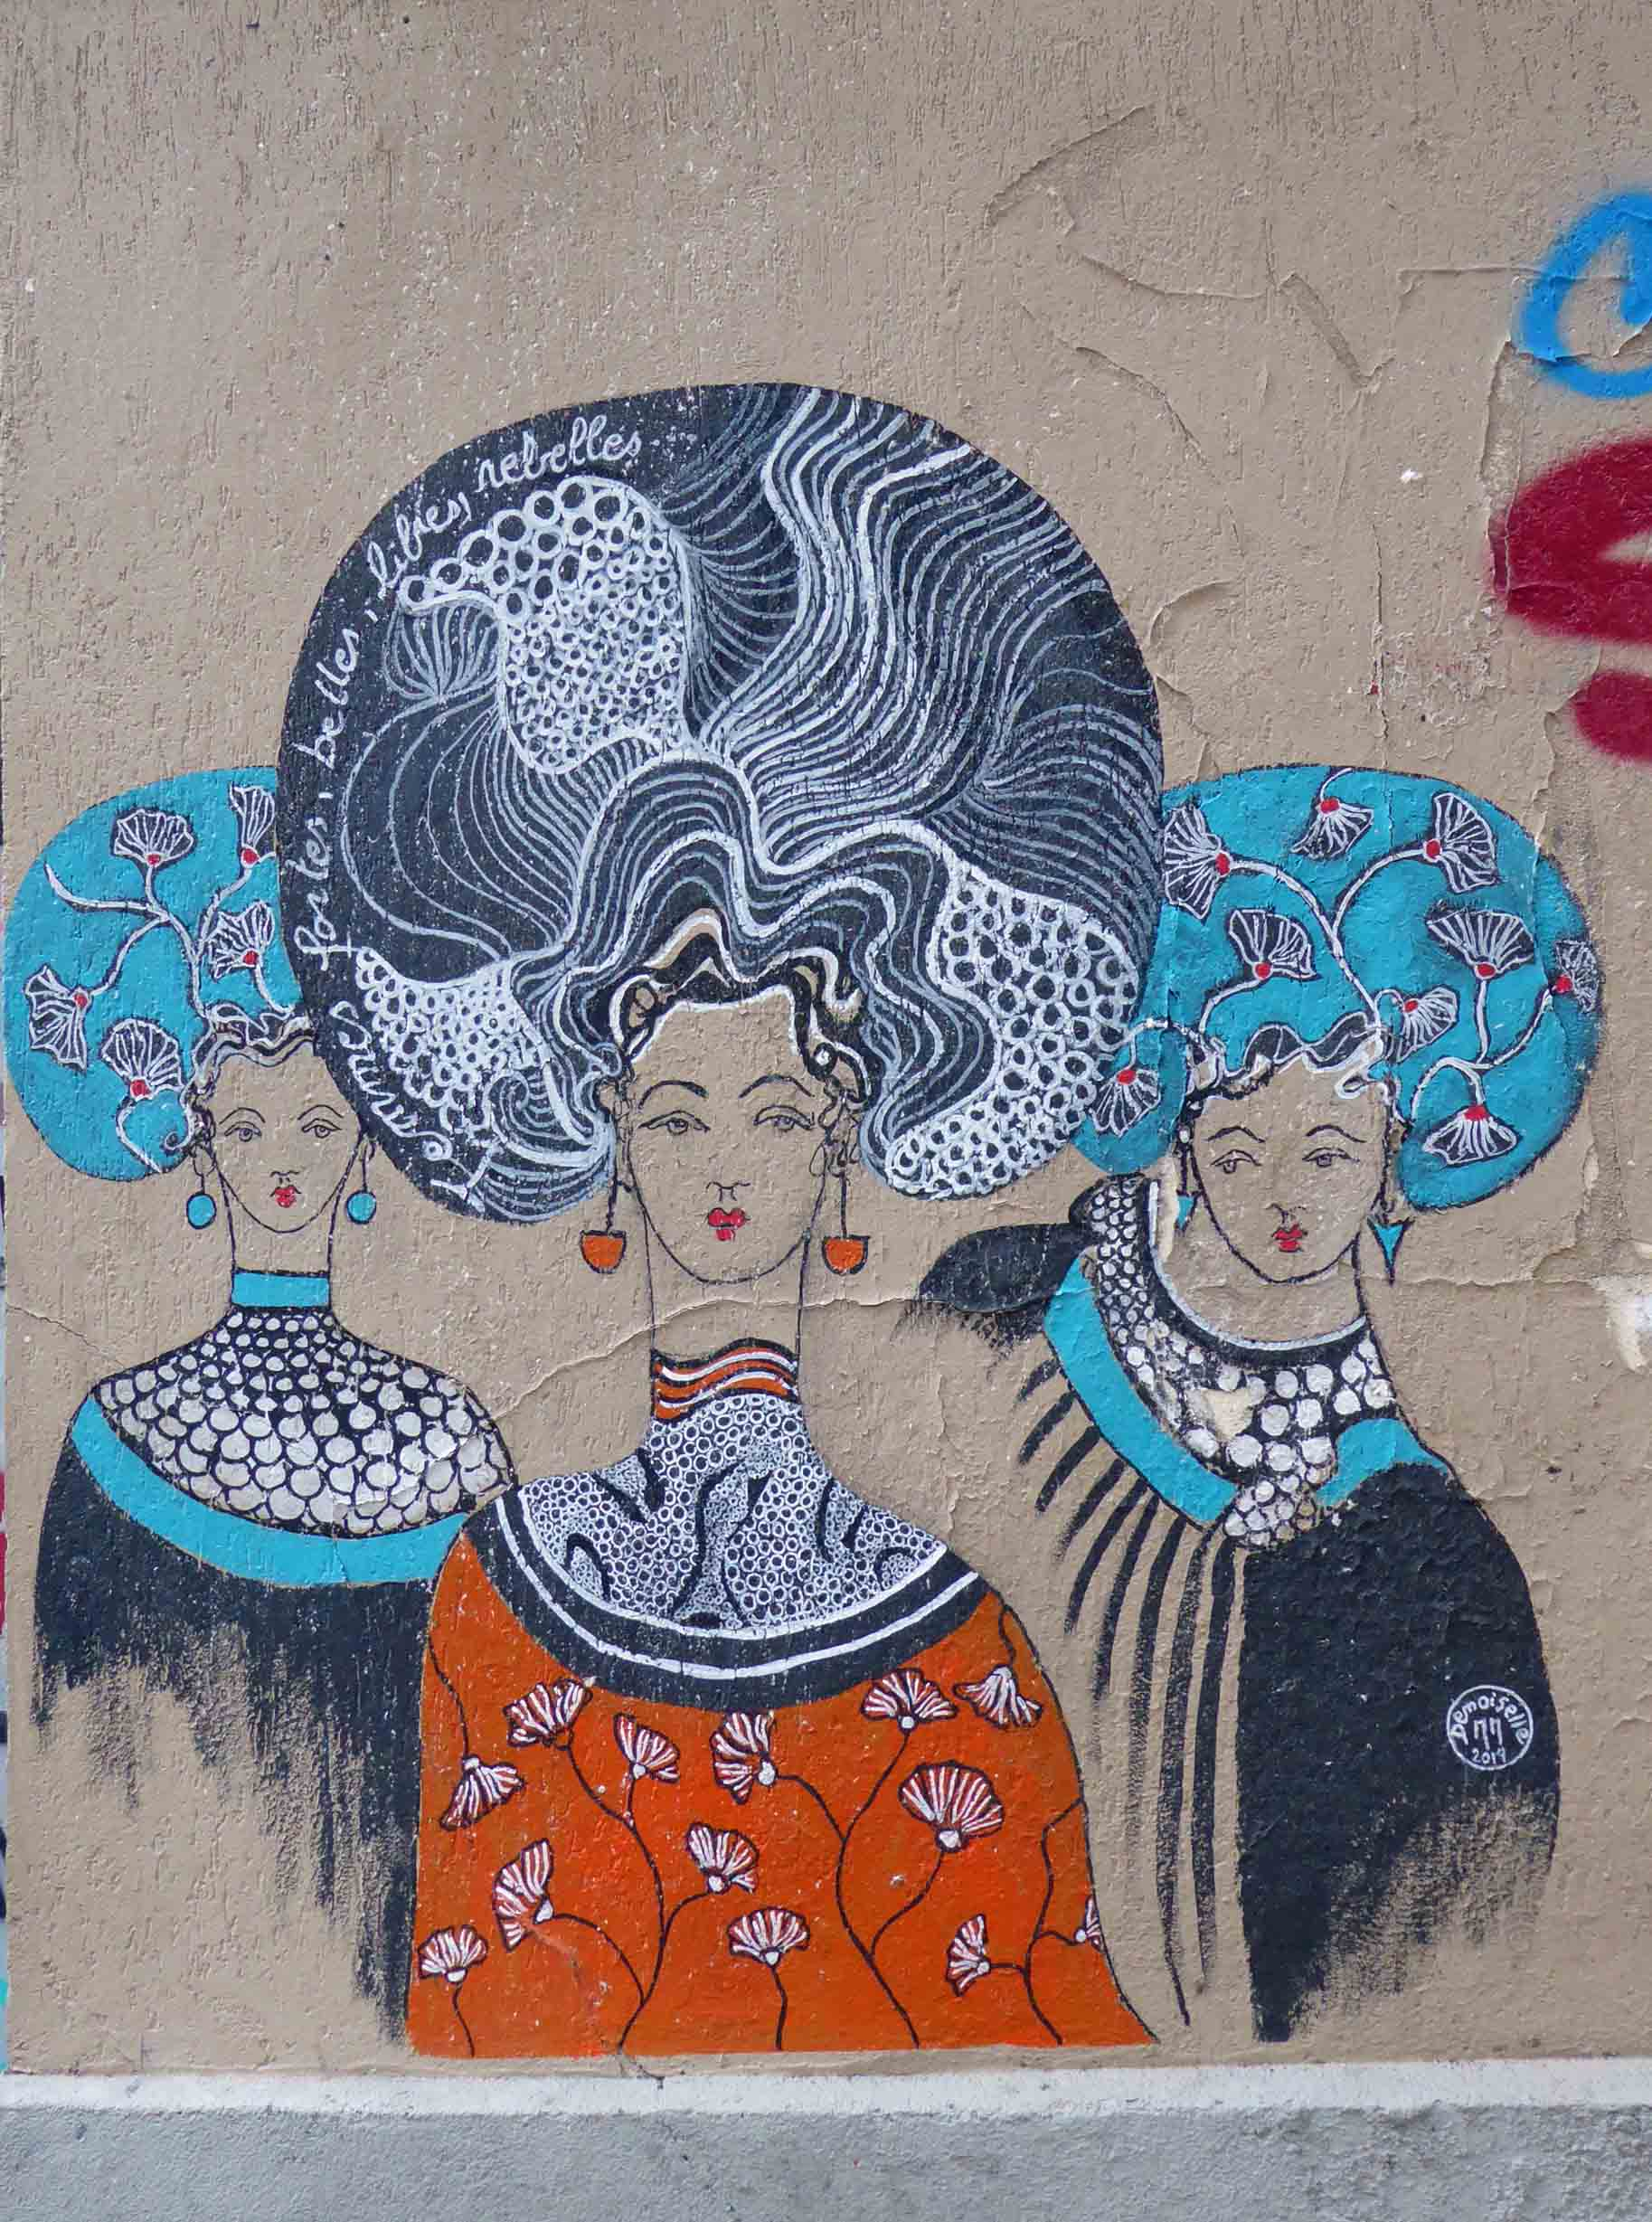 Mural of three ladies with dramatic hair